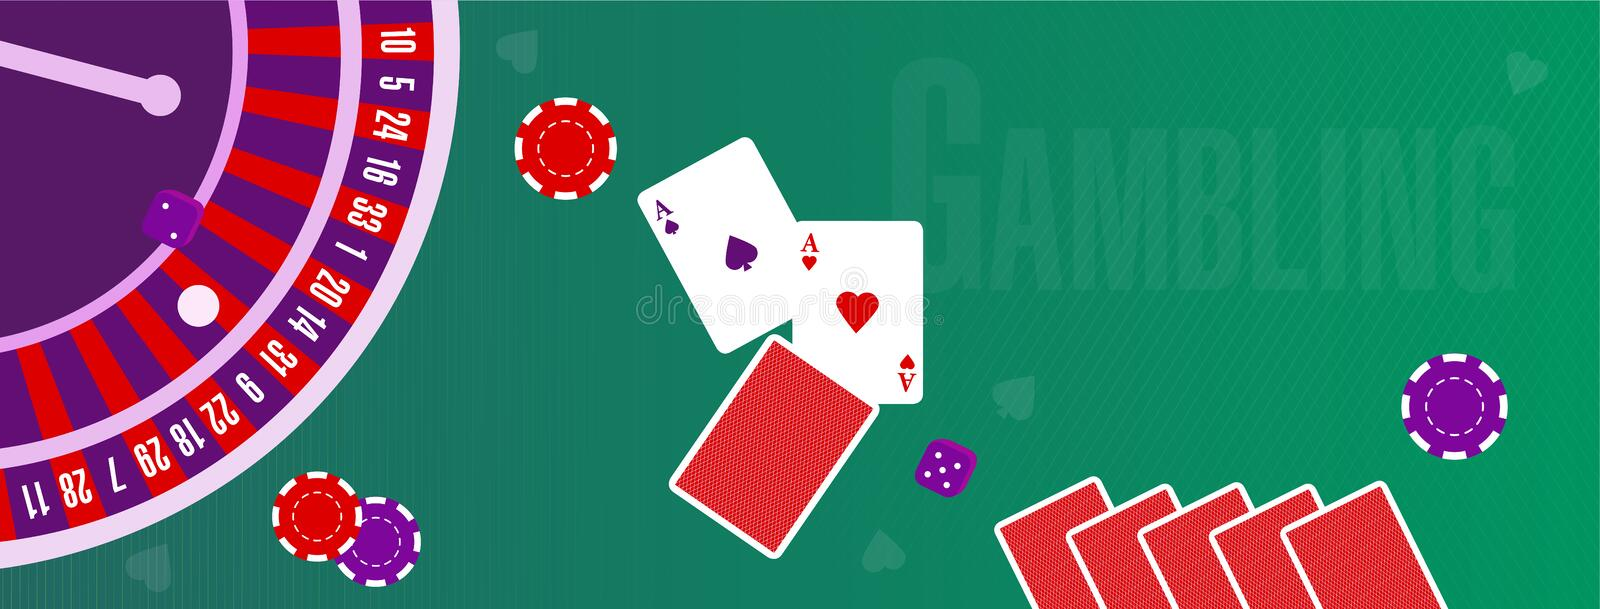 Vector illustration or cover for a site about gambling stock illustration